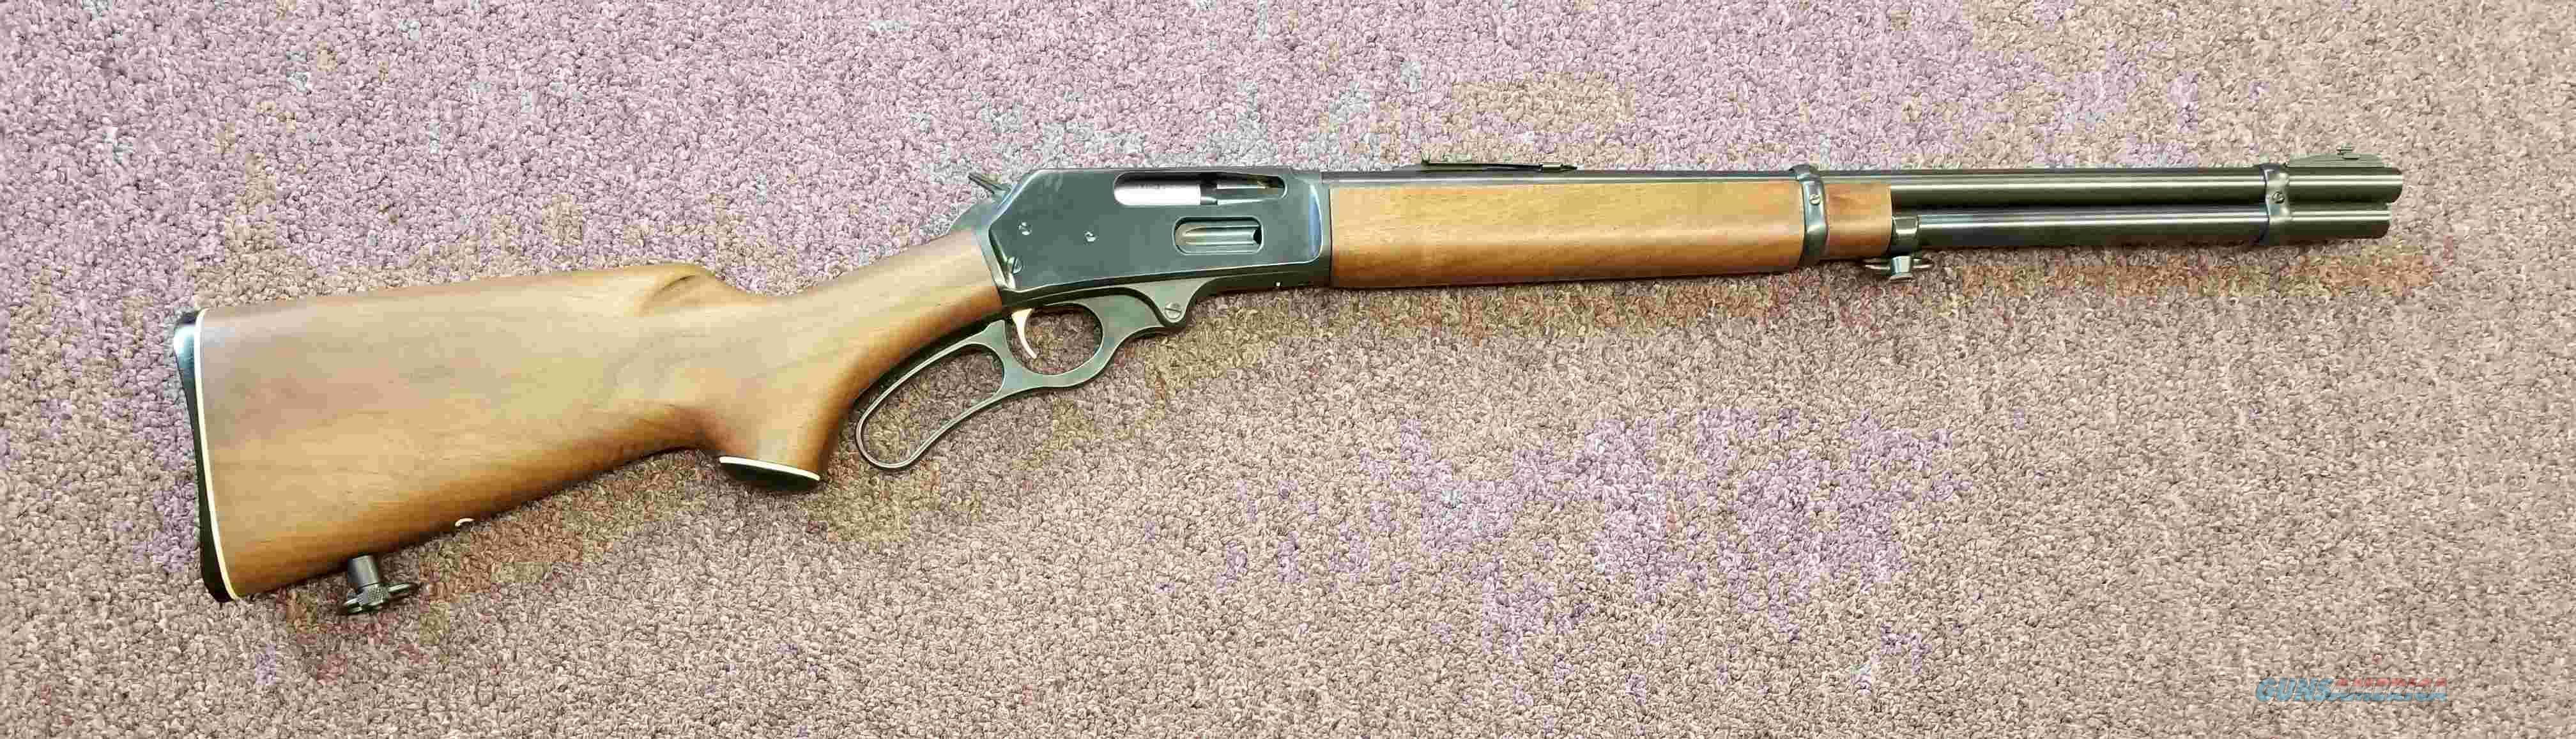 Marlin 336 - Lever Action 30-30 - Marked JM - Free Shipping !!!  Guns > Rifles > Marlin Rifles > Modern > Lever Action